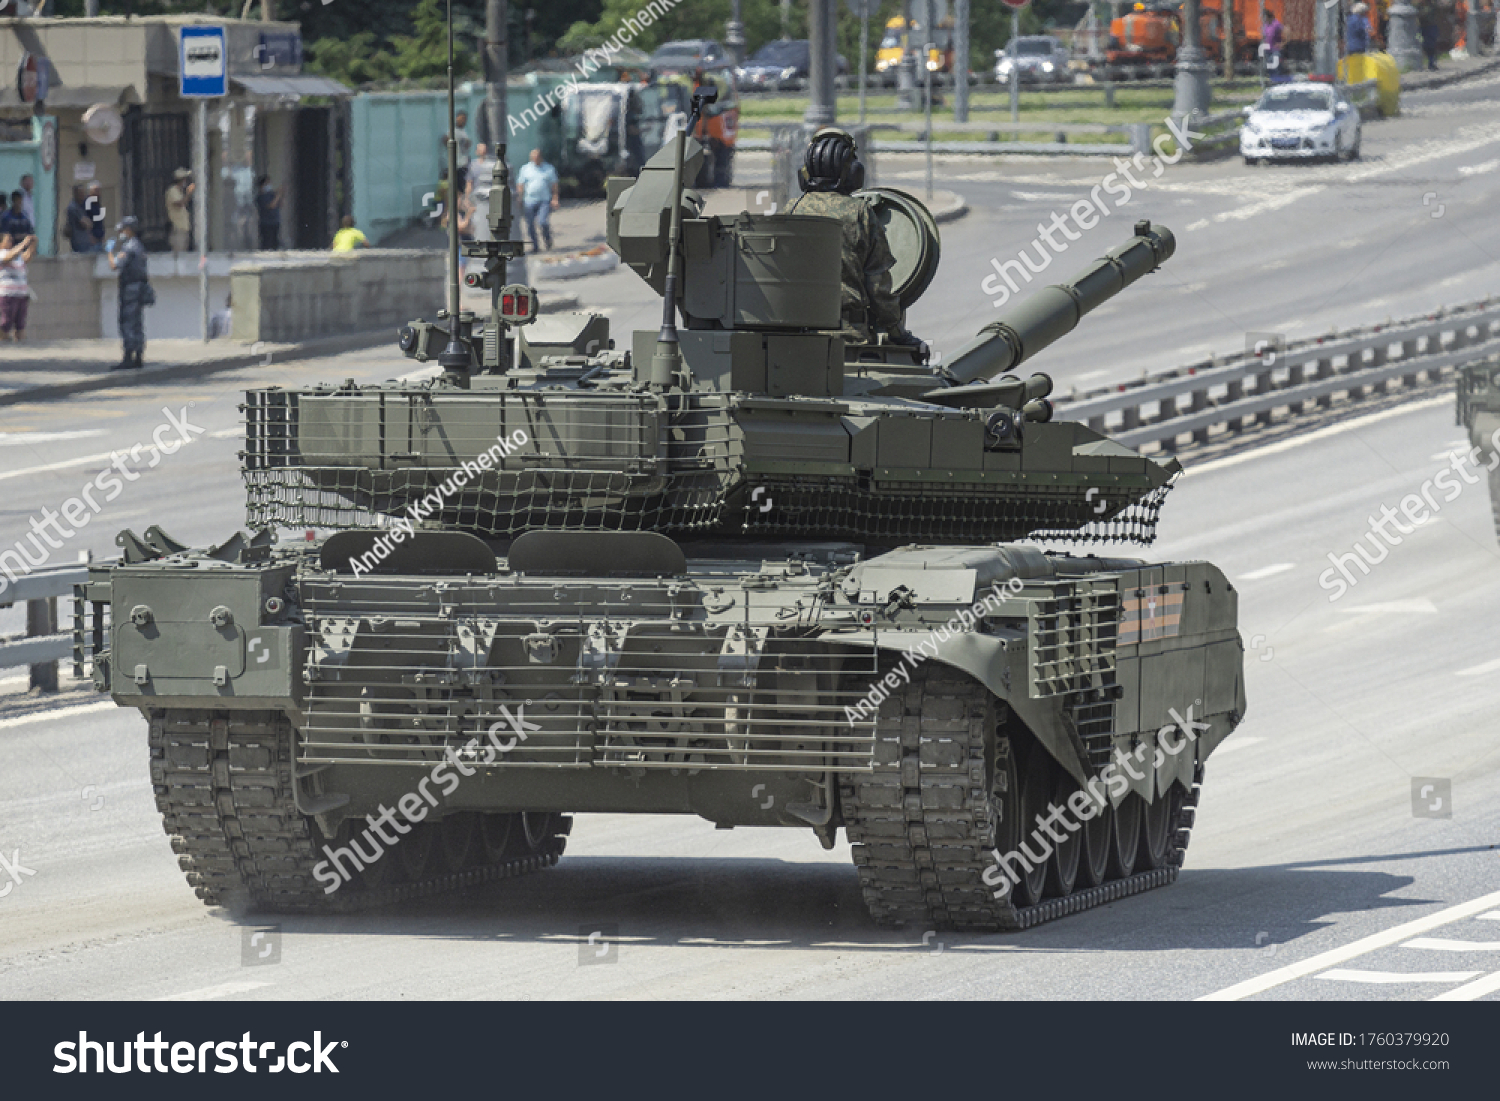 https://image.shutterstock.com/z/stock-photo-june-moscow-russia-the-t-m-tank-returns-after-participating-in-the-rehearsal-of-the-1760379920.jpg